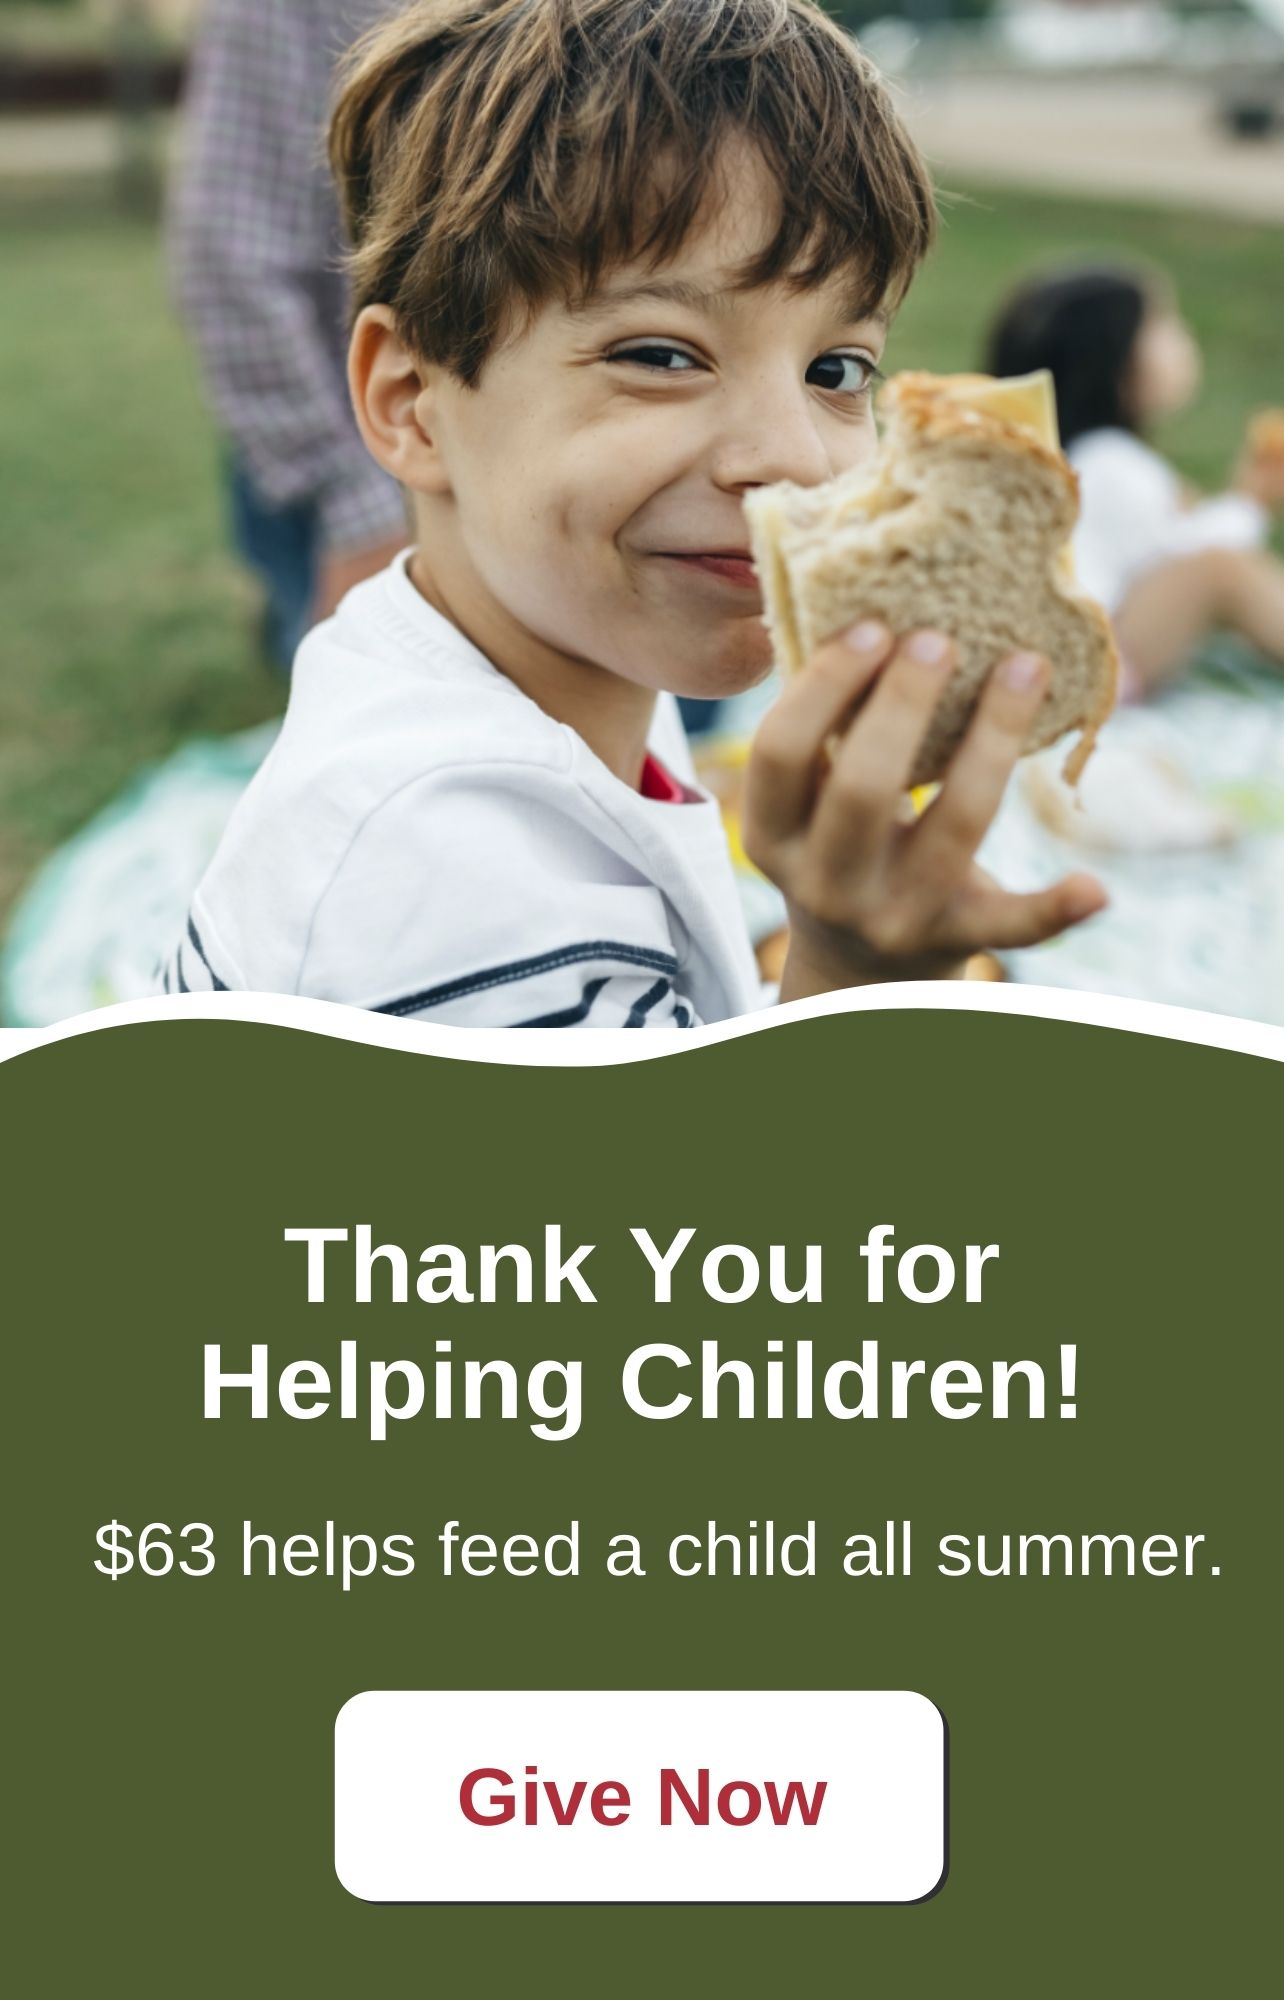 Thank You for Helping Children!